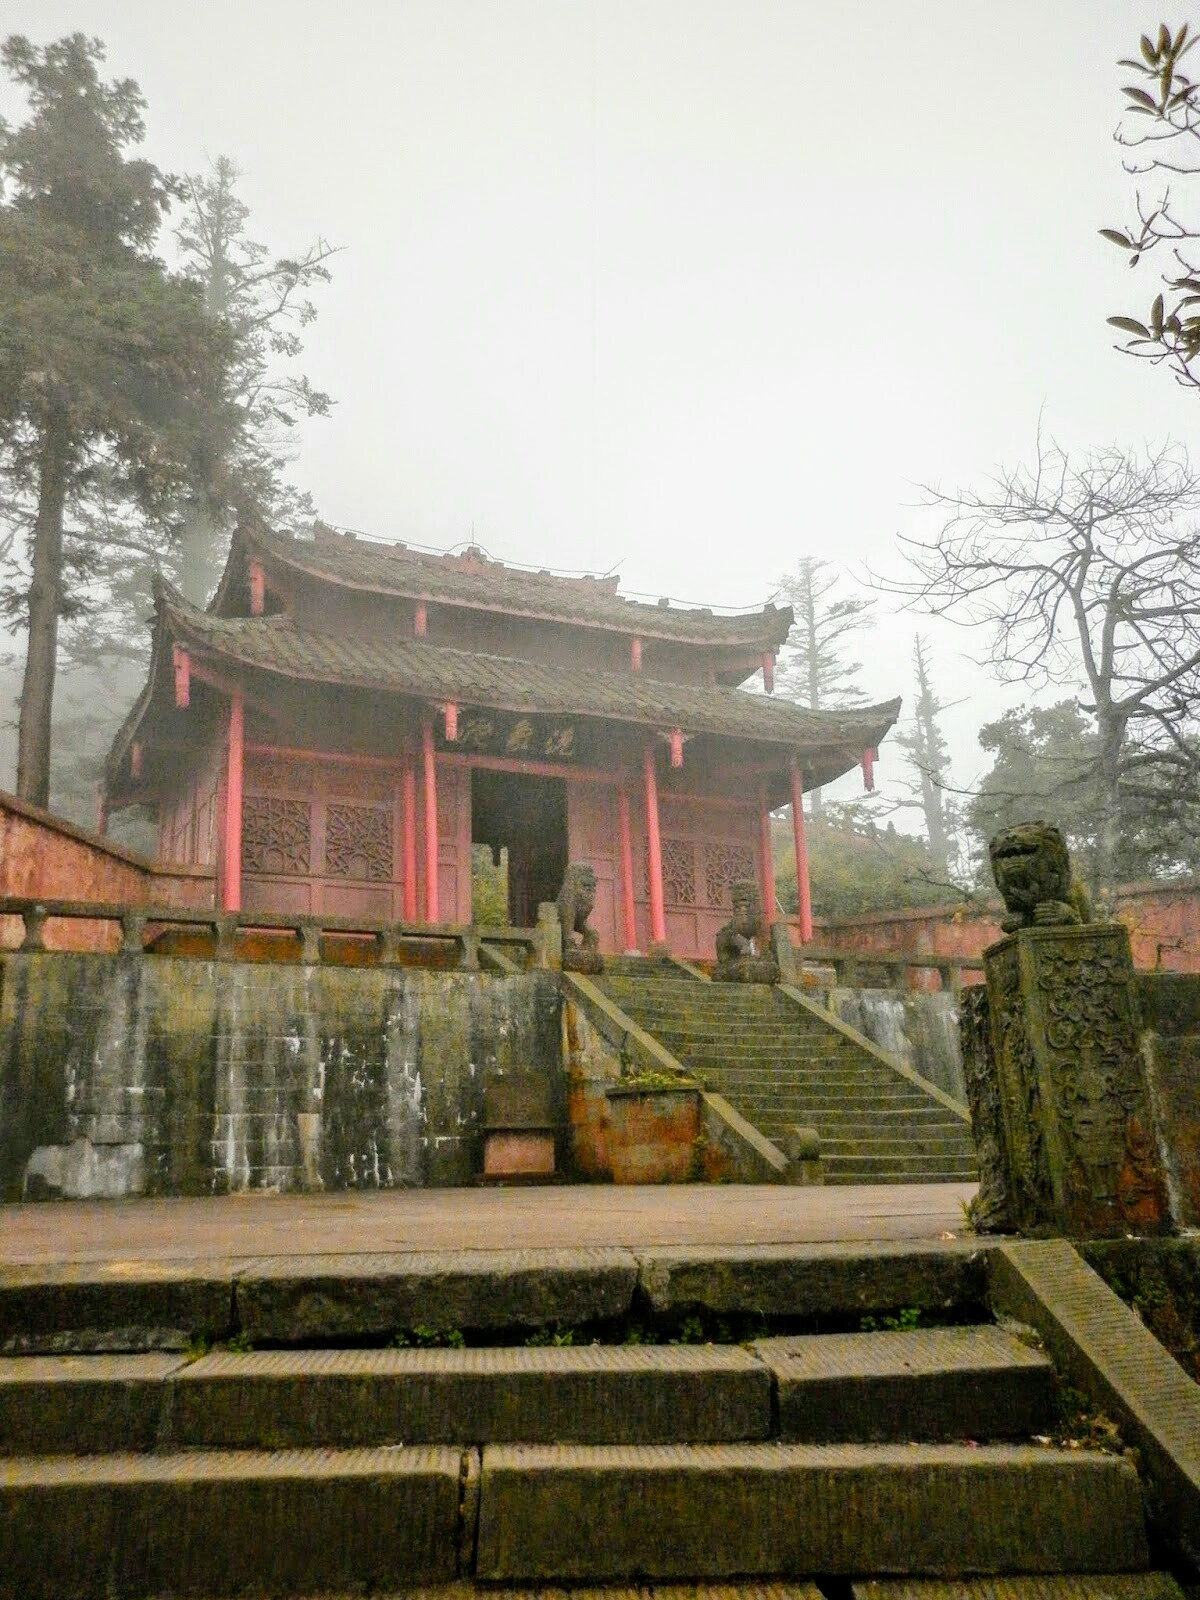 Xixiang Chi Monastery up in the mountain of Emei Shan, in China